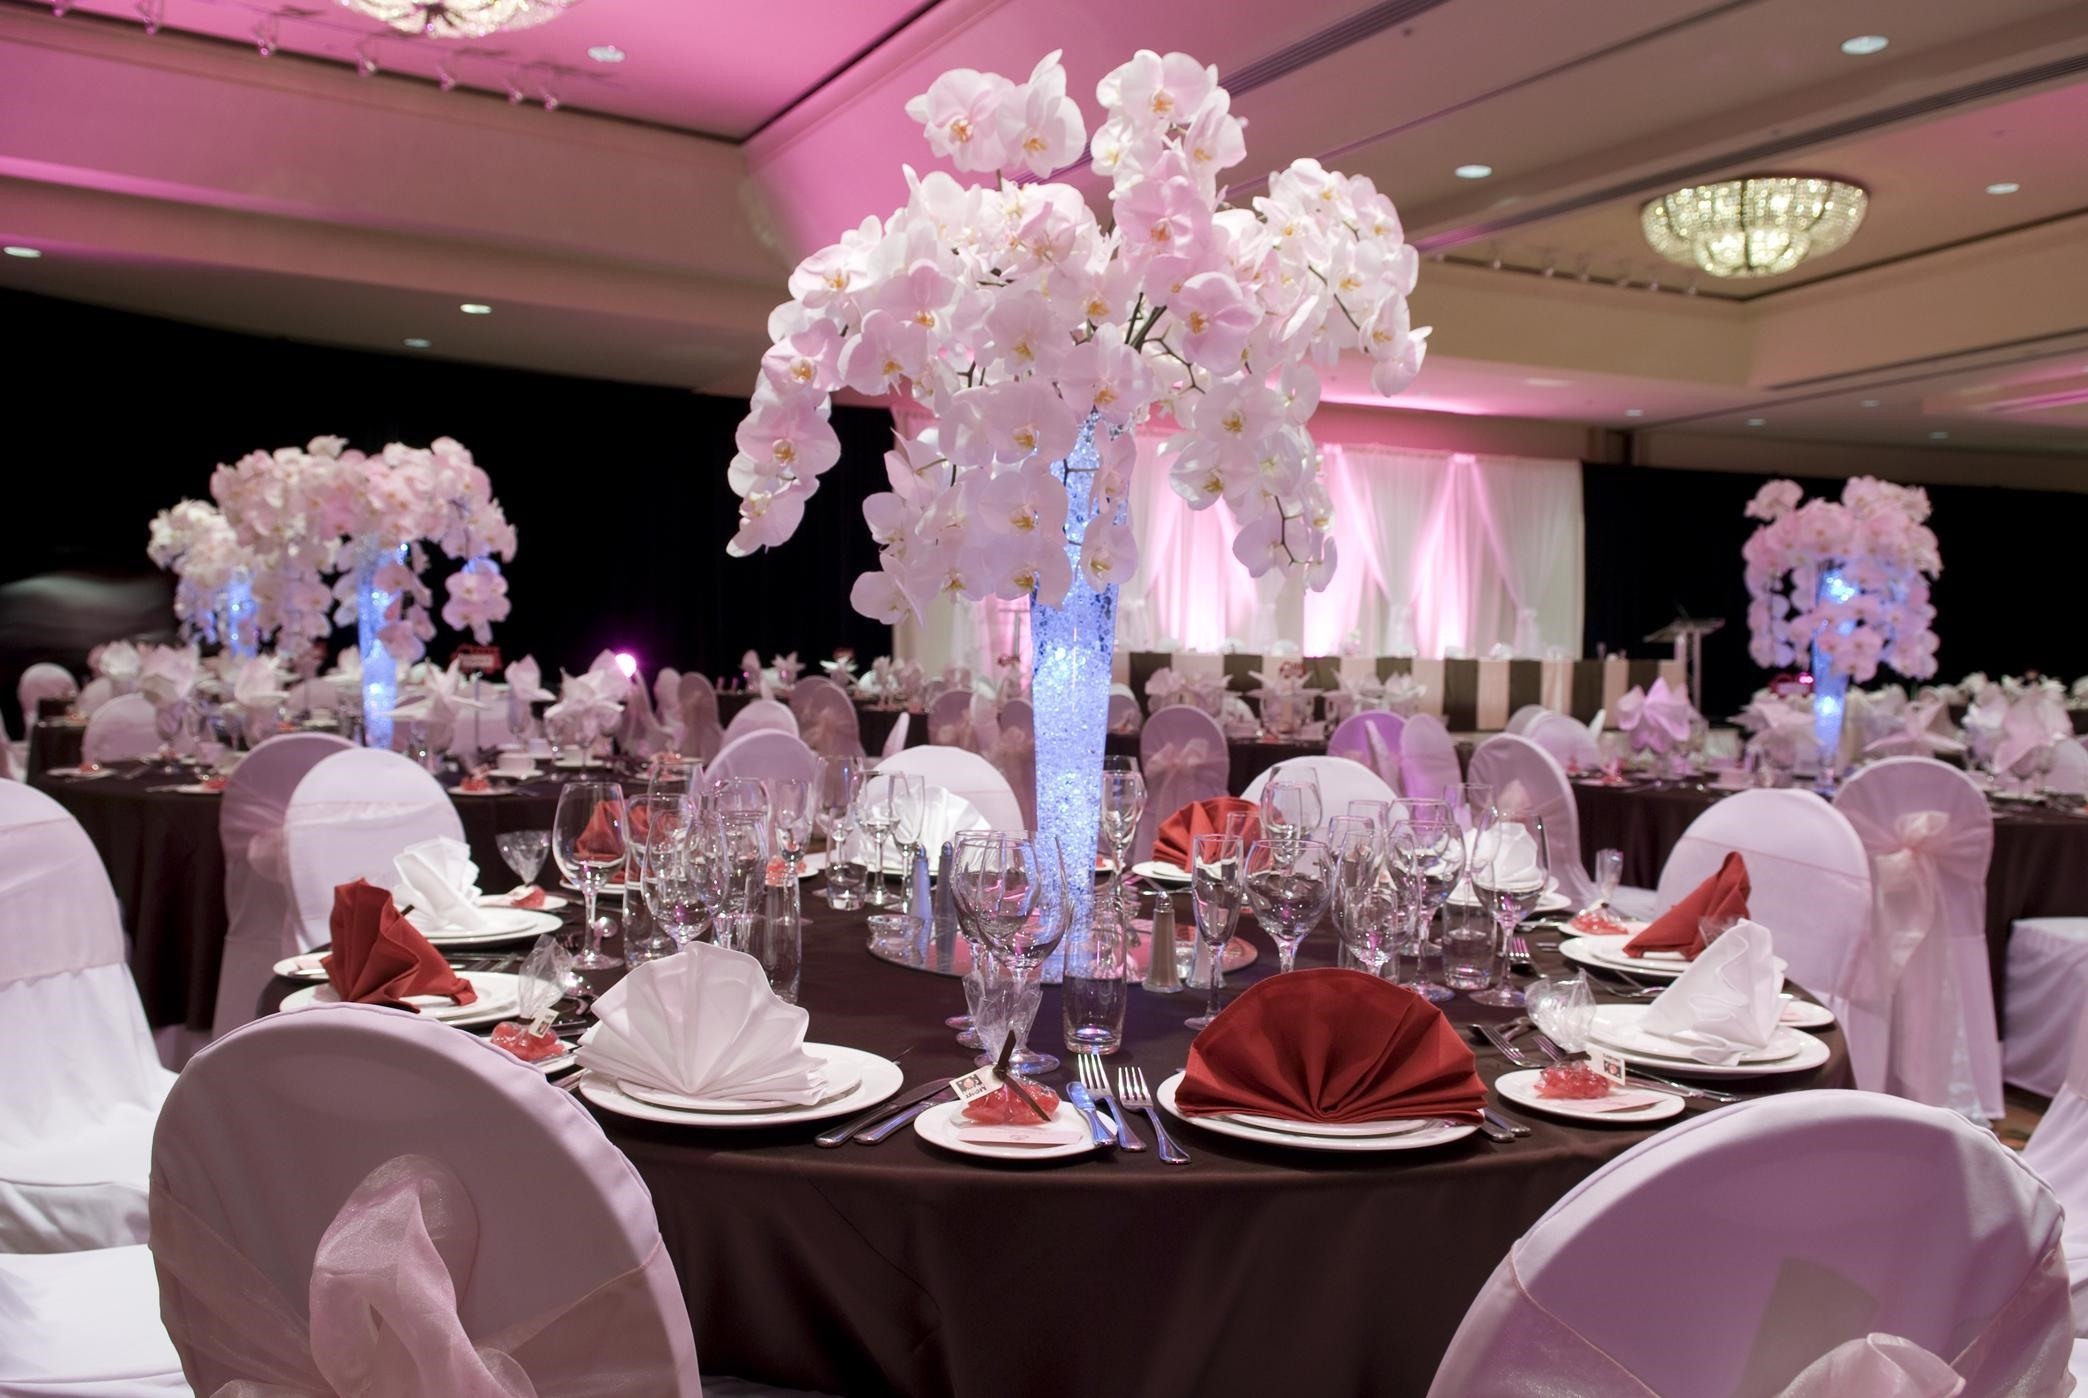 Hilton Vancouver Metrotown in Burnaby: Wedding Reception Table